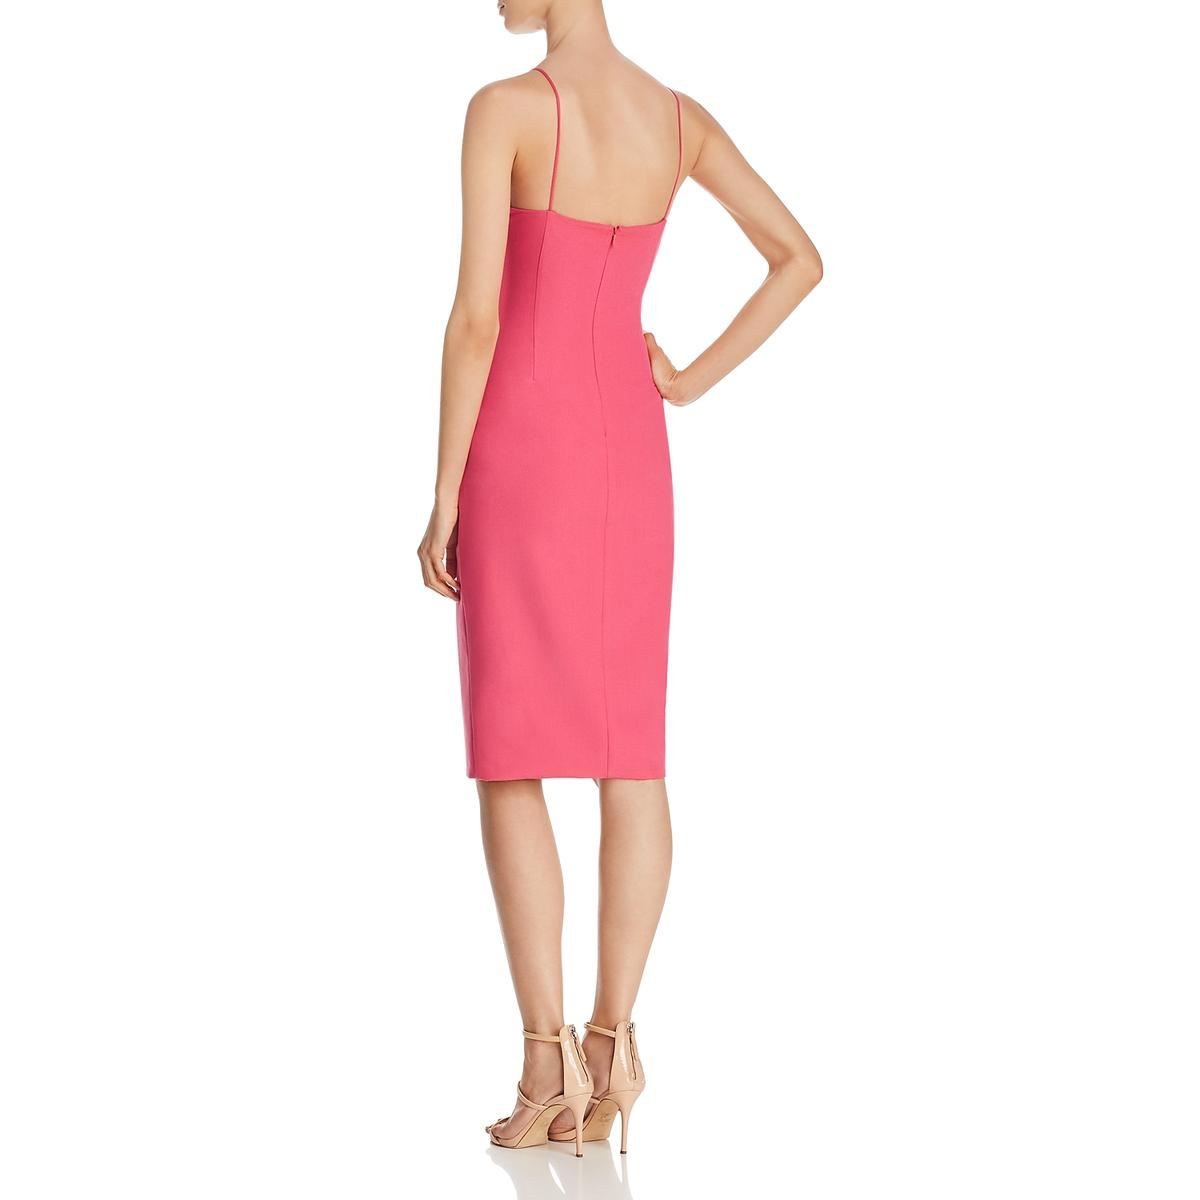 Black Halo Womens Bowery Ruched Cocktail Party Sheath Dress BHFO 7460